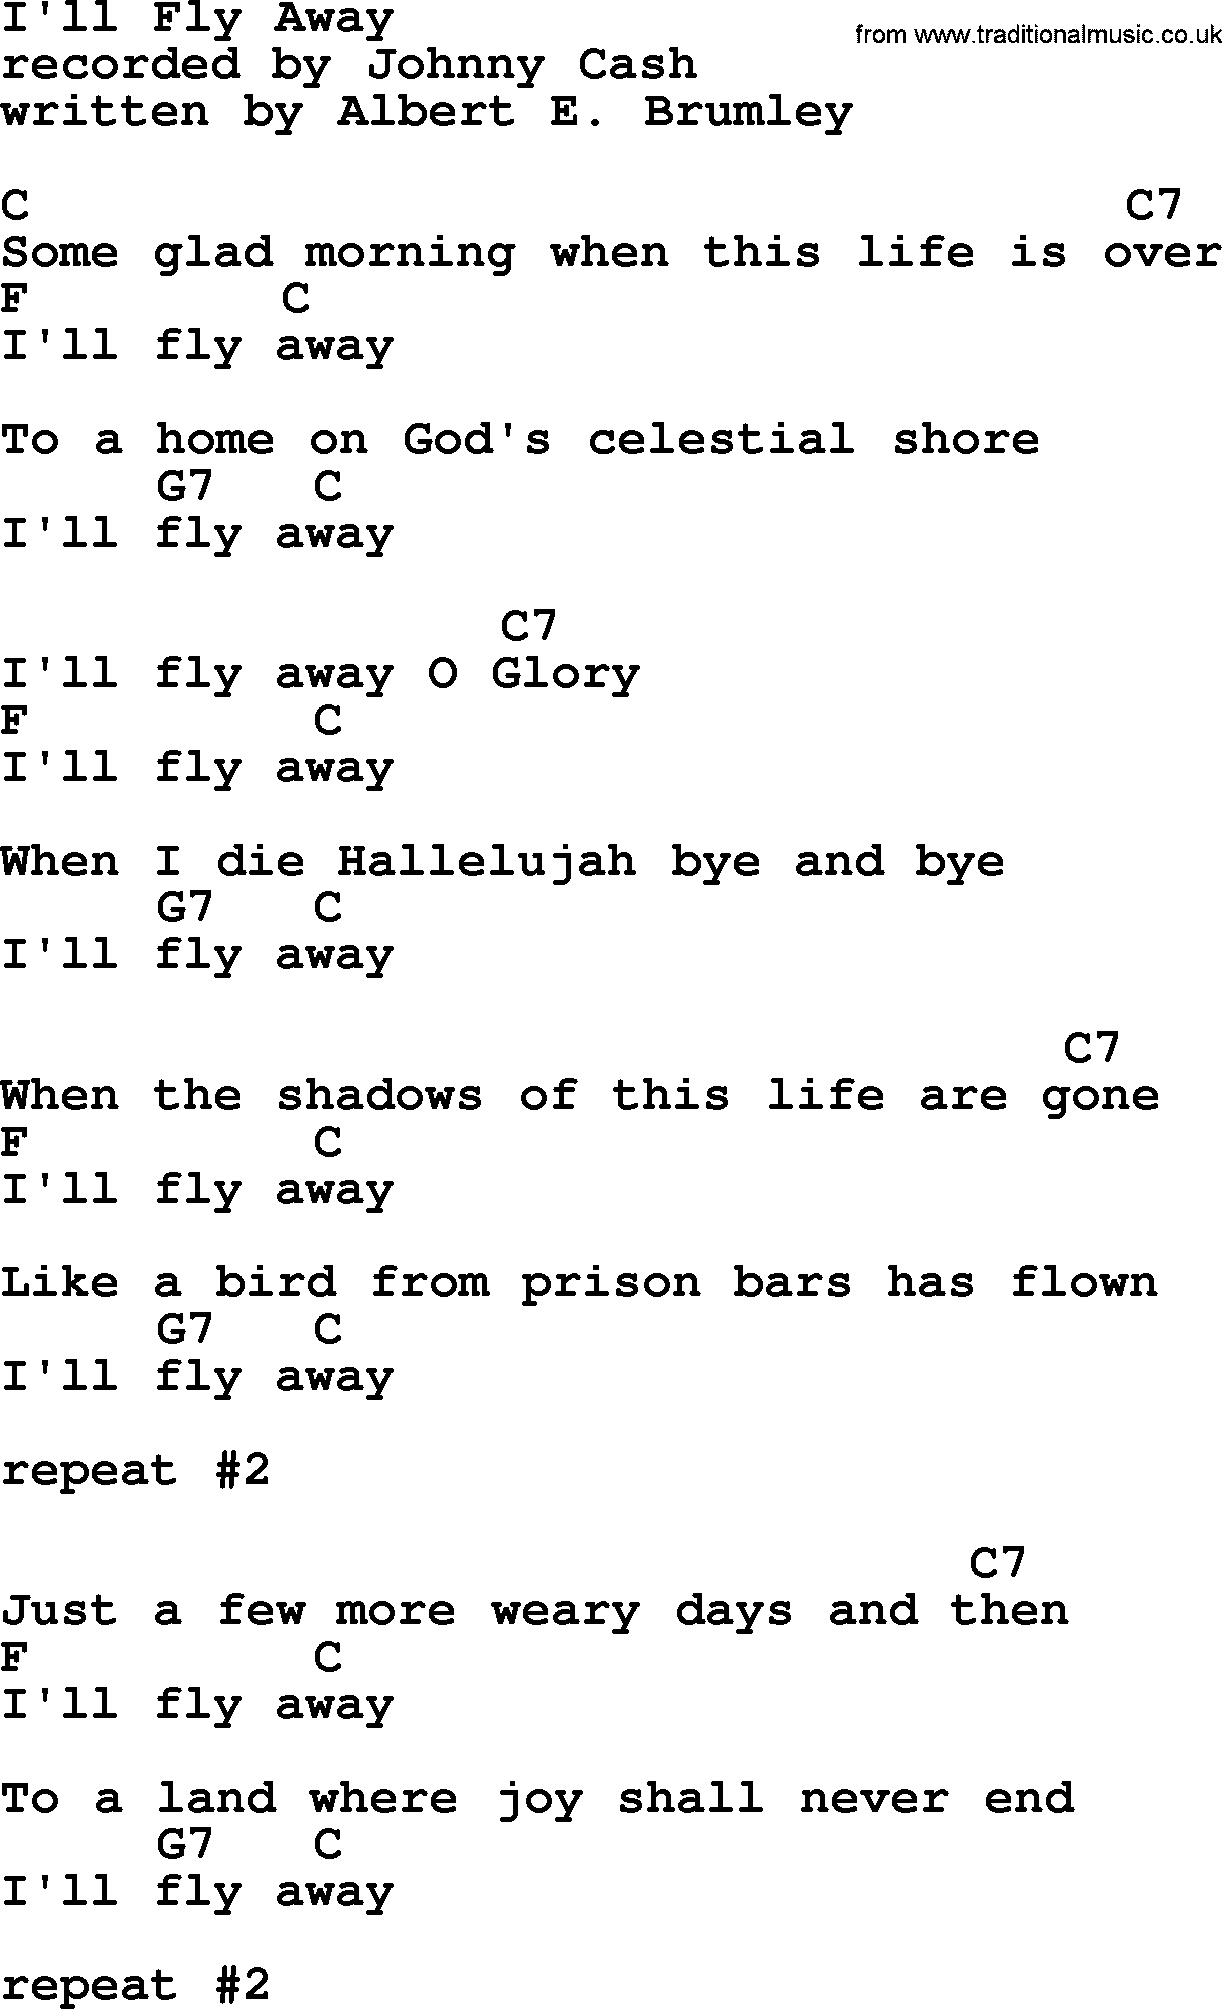 Johnny Cash Song Ill Fly Away Lyrics And Chords Music In 2018